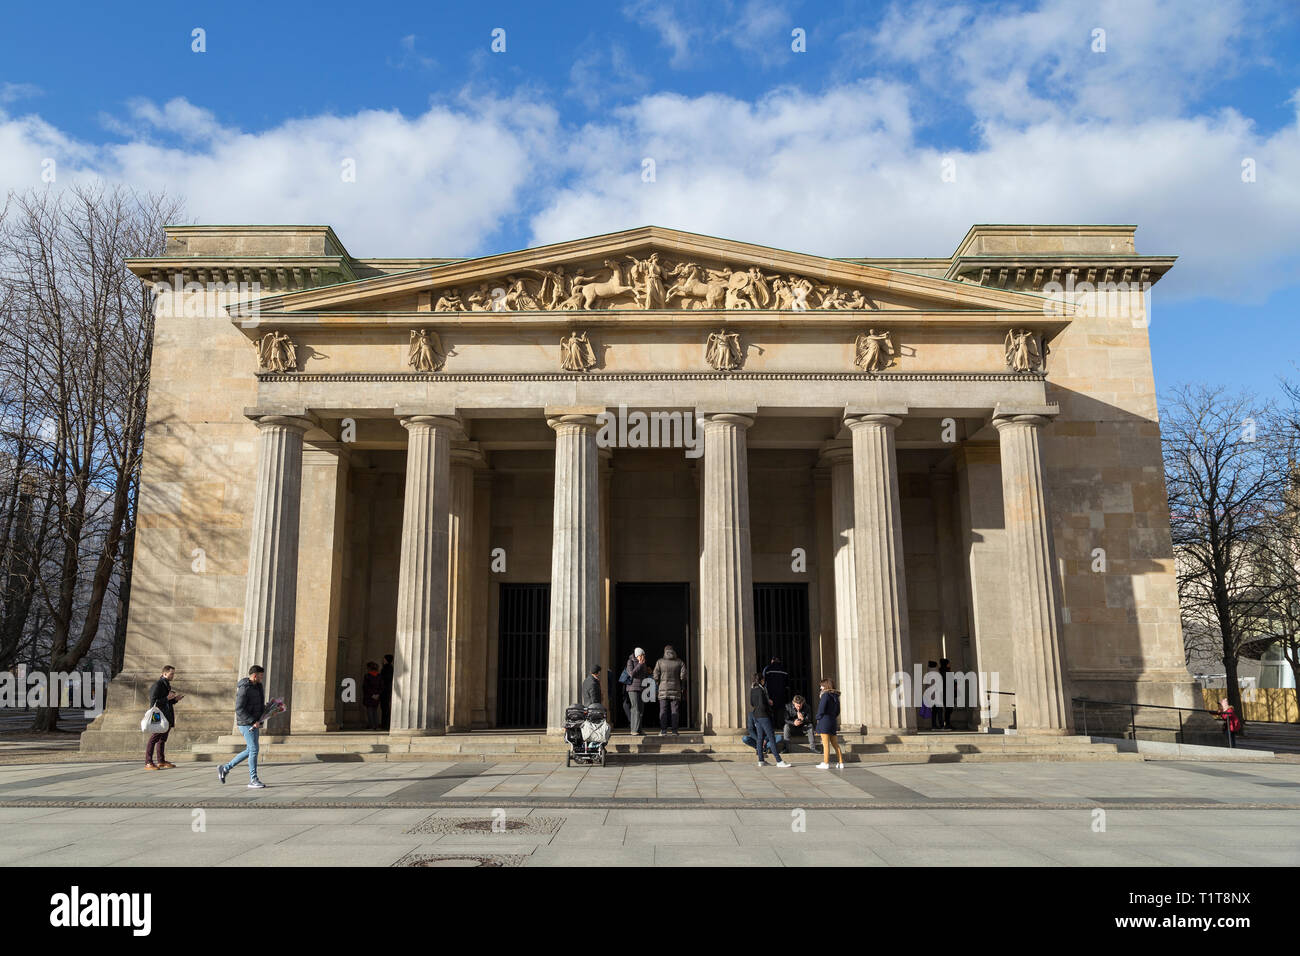 People at the Neo-Classical Neue Wache, war memorial for the victims of war and dictatorship in Berlin, Germany, on a sunny day. Stock Photo